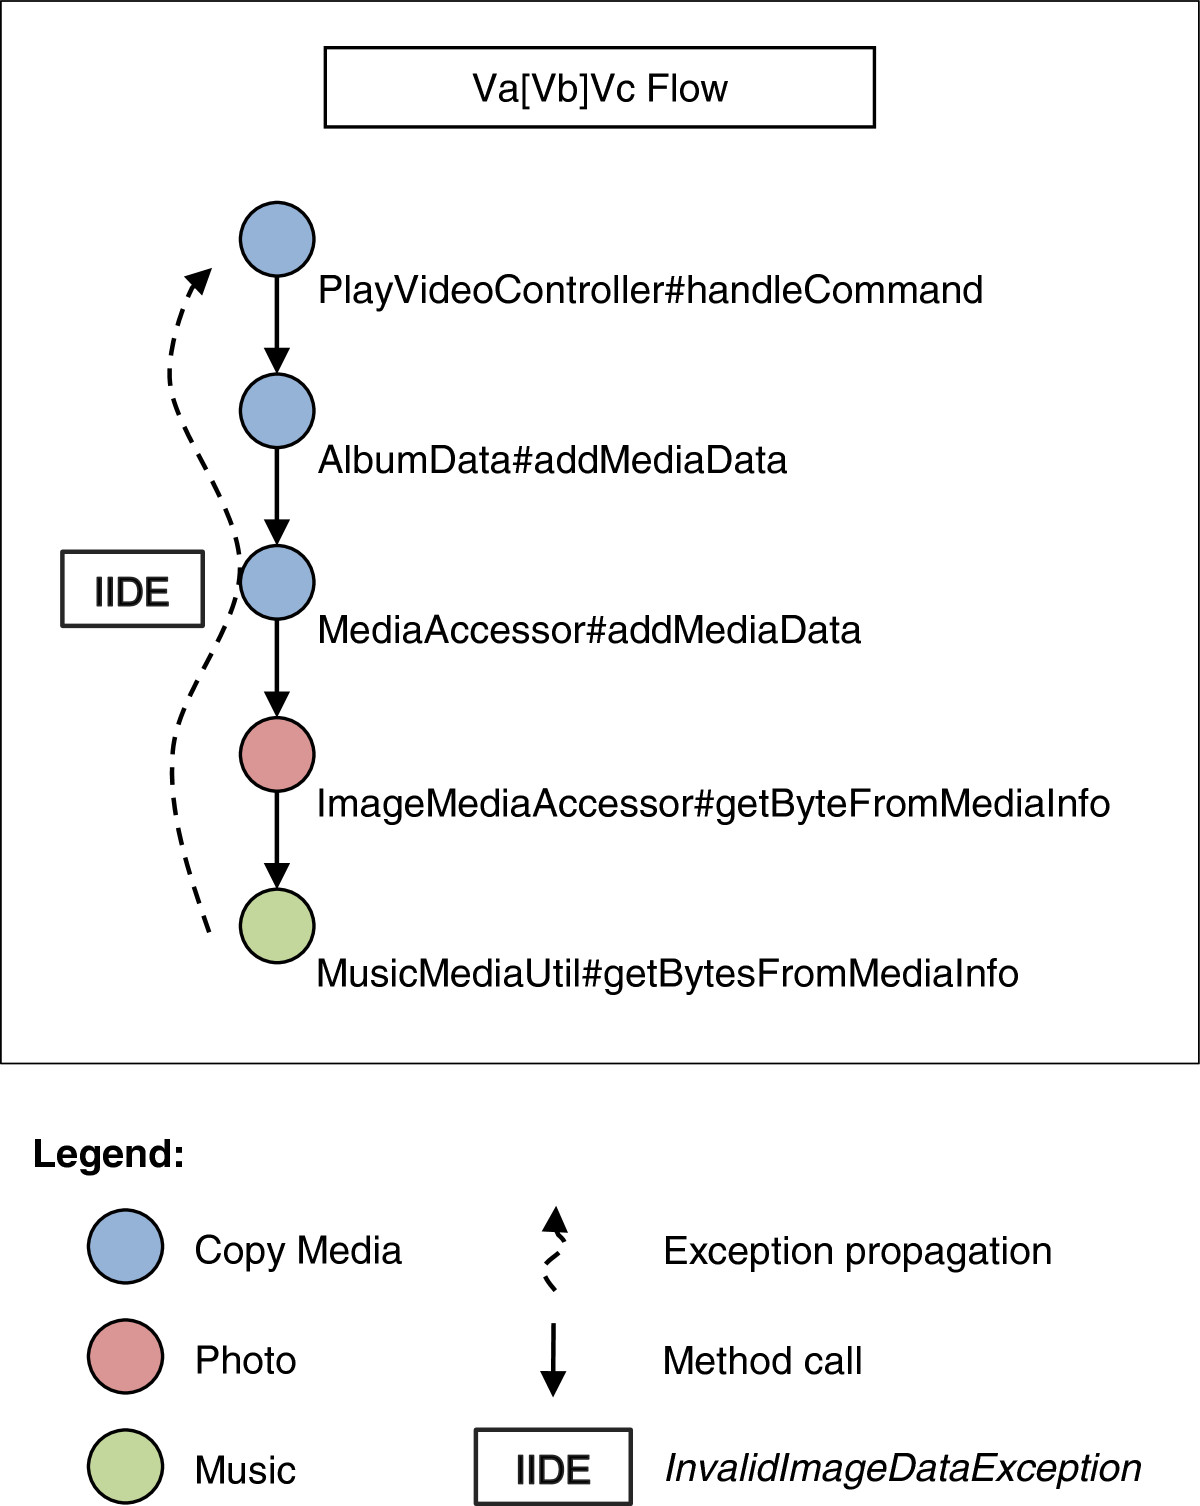 https://static-content.springer.com/image/art%3A10.1186%2F2195-1721-1-3/MediaObjects/40411_2013_Article_3_Fig15_HTML.jpg